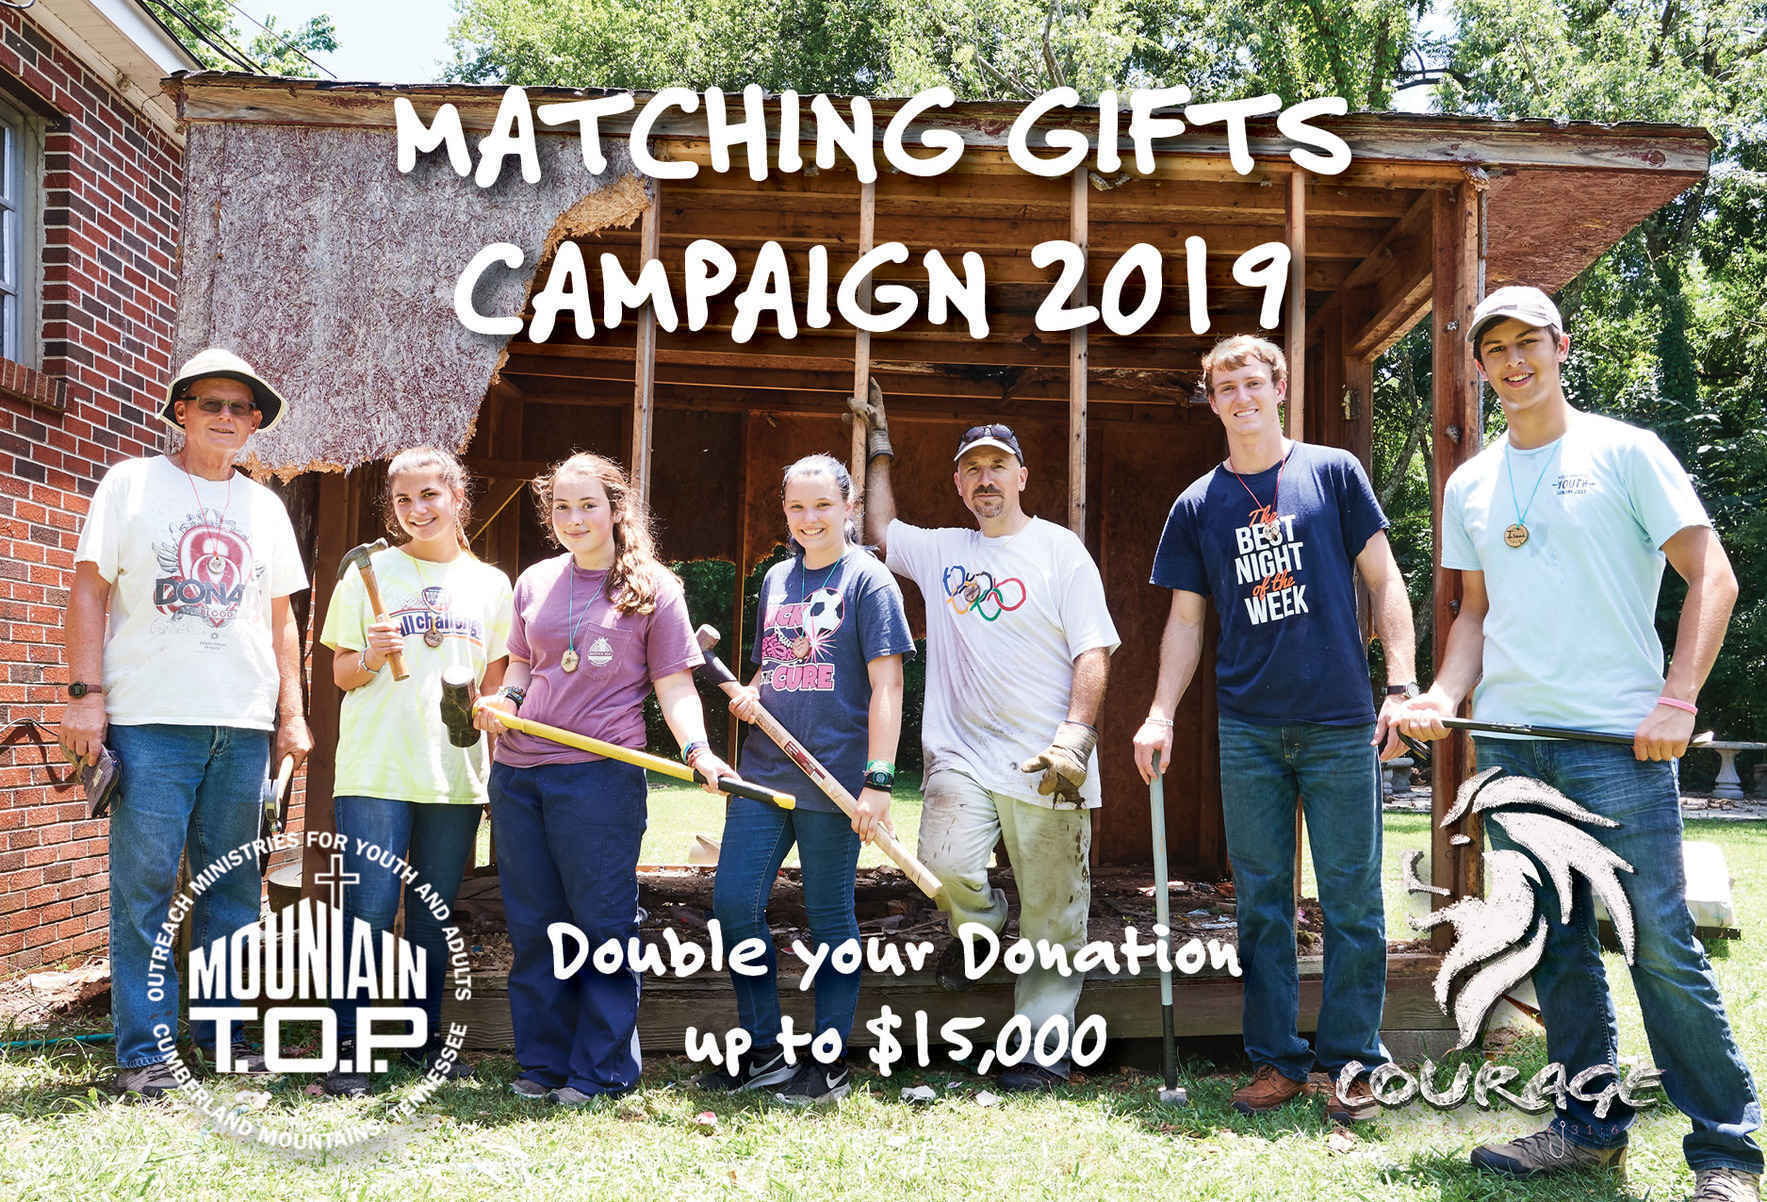 It's Mountain T.O.P's 4th Annual Matching Gifts Campaign! UPDATED image